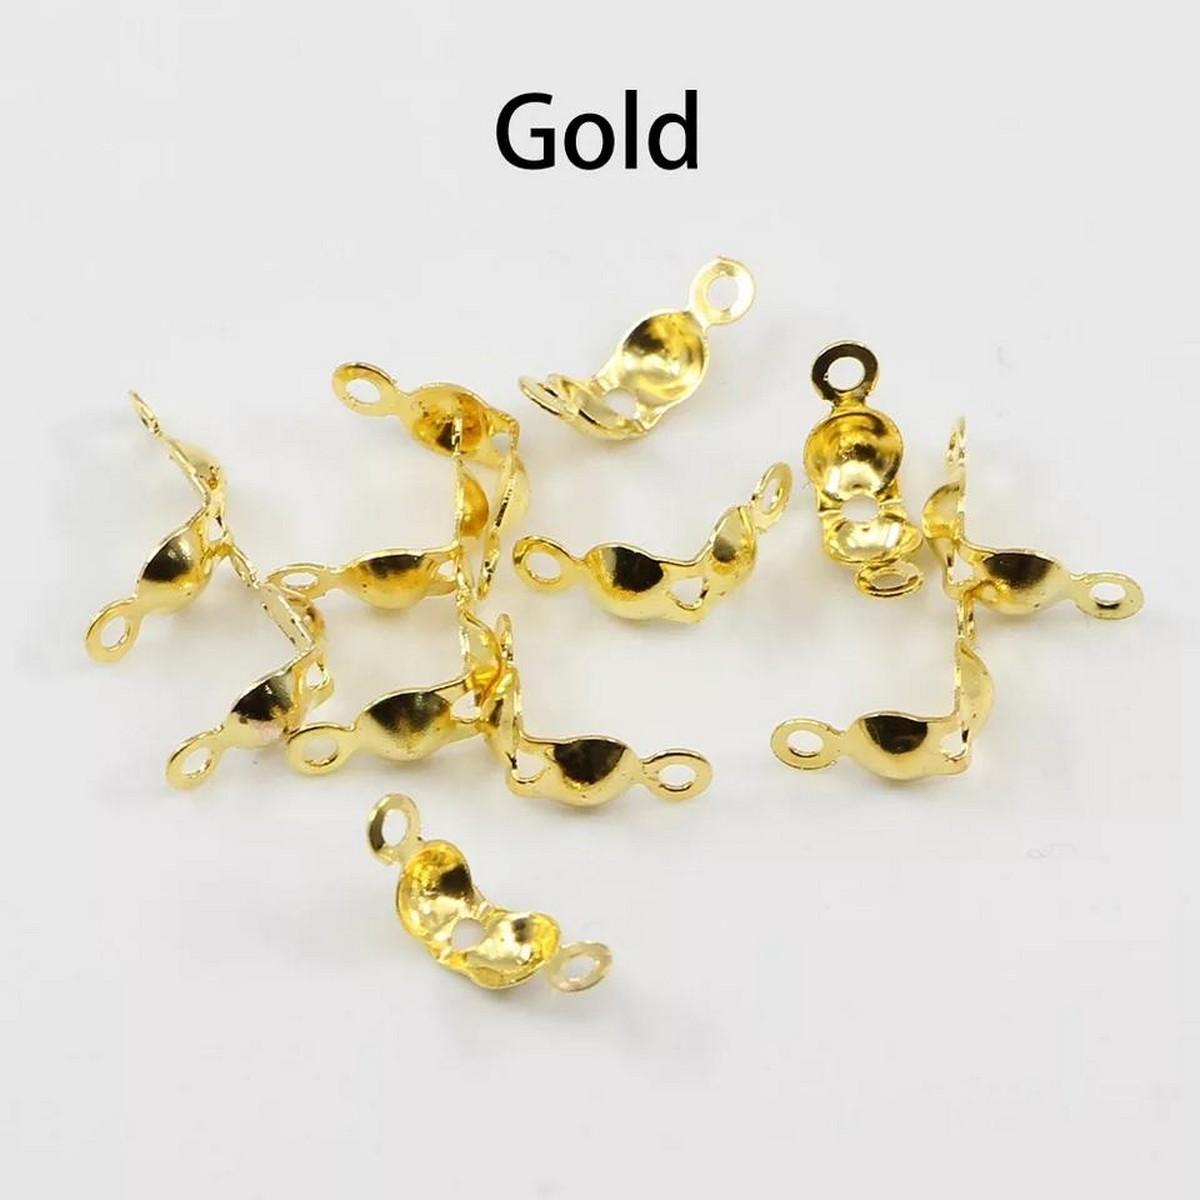 【Gold Connector Clasp】25pcs/lot Connector Clasp Fitting 4*7mm Ball Chain Calotte End Crimps Beads Connector Components For DIY Jewelry Making Supplie Fashionate.